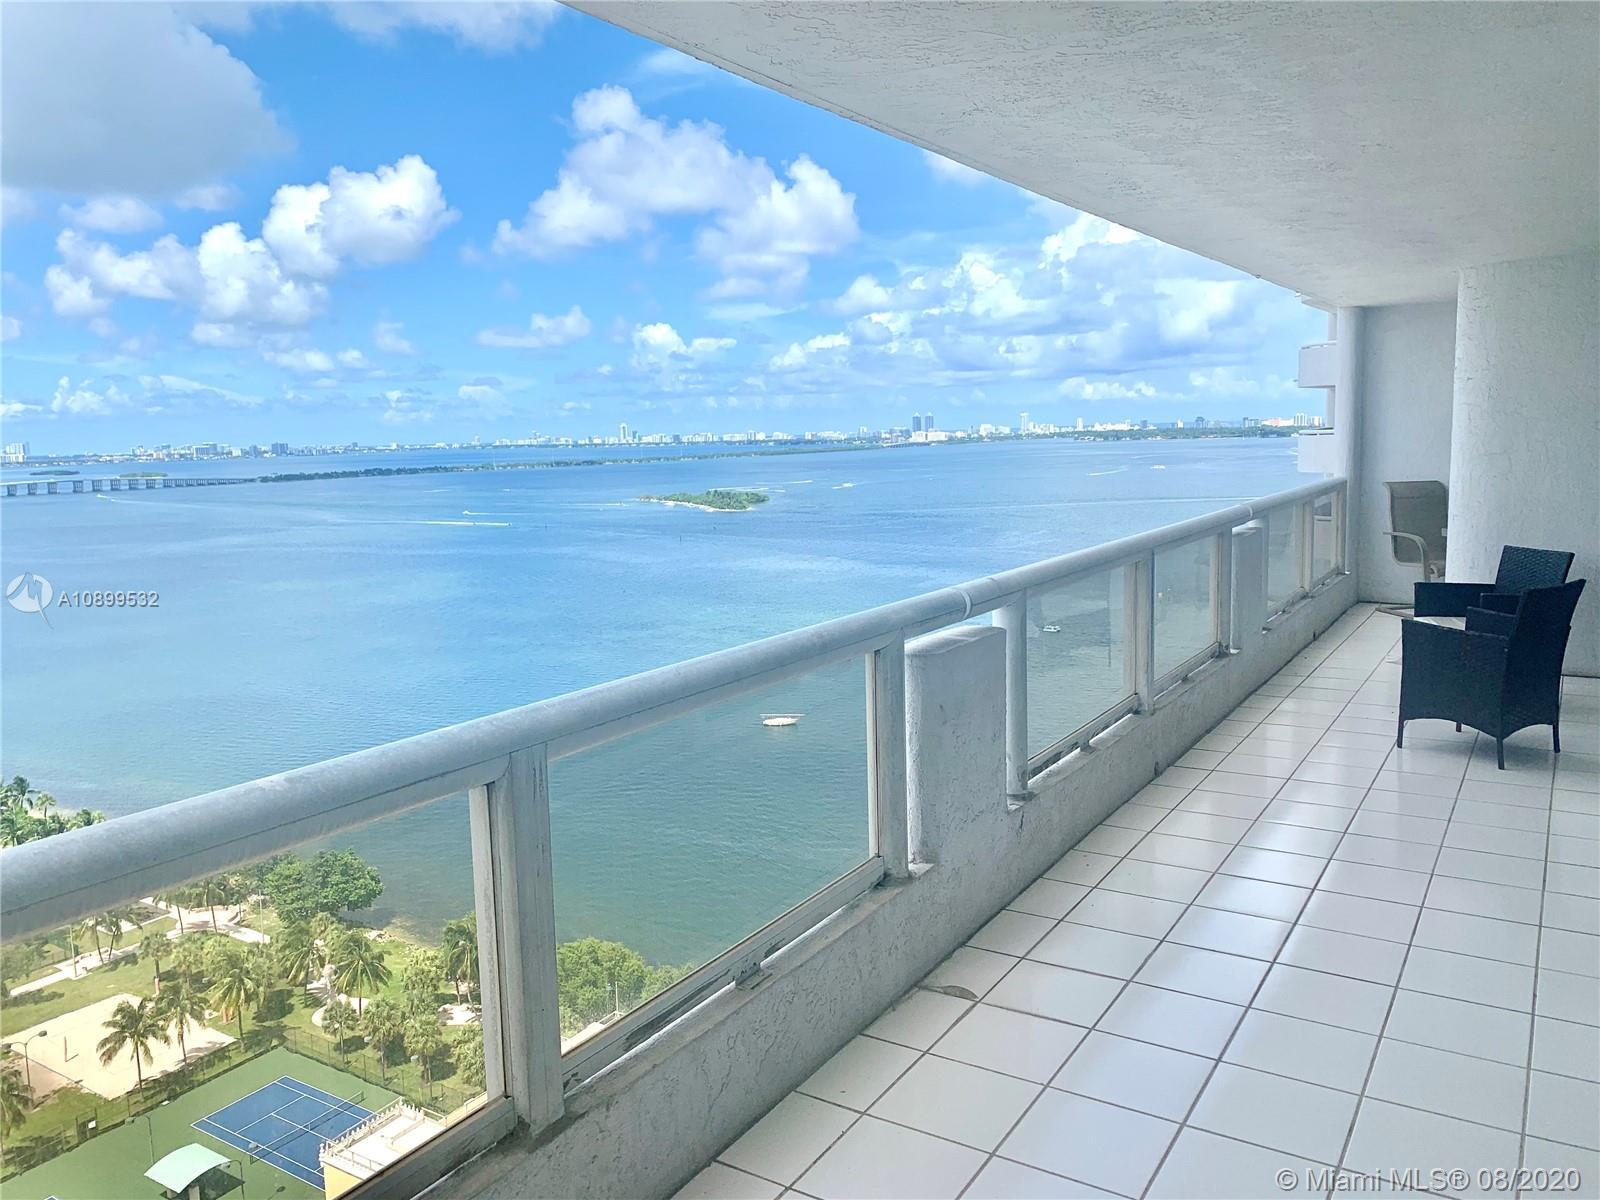 Luxury unit at THE GRAND. One Miami's most iconic landmark buildings located in Omni district in Dow